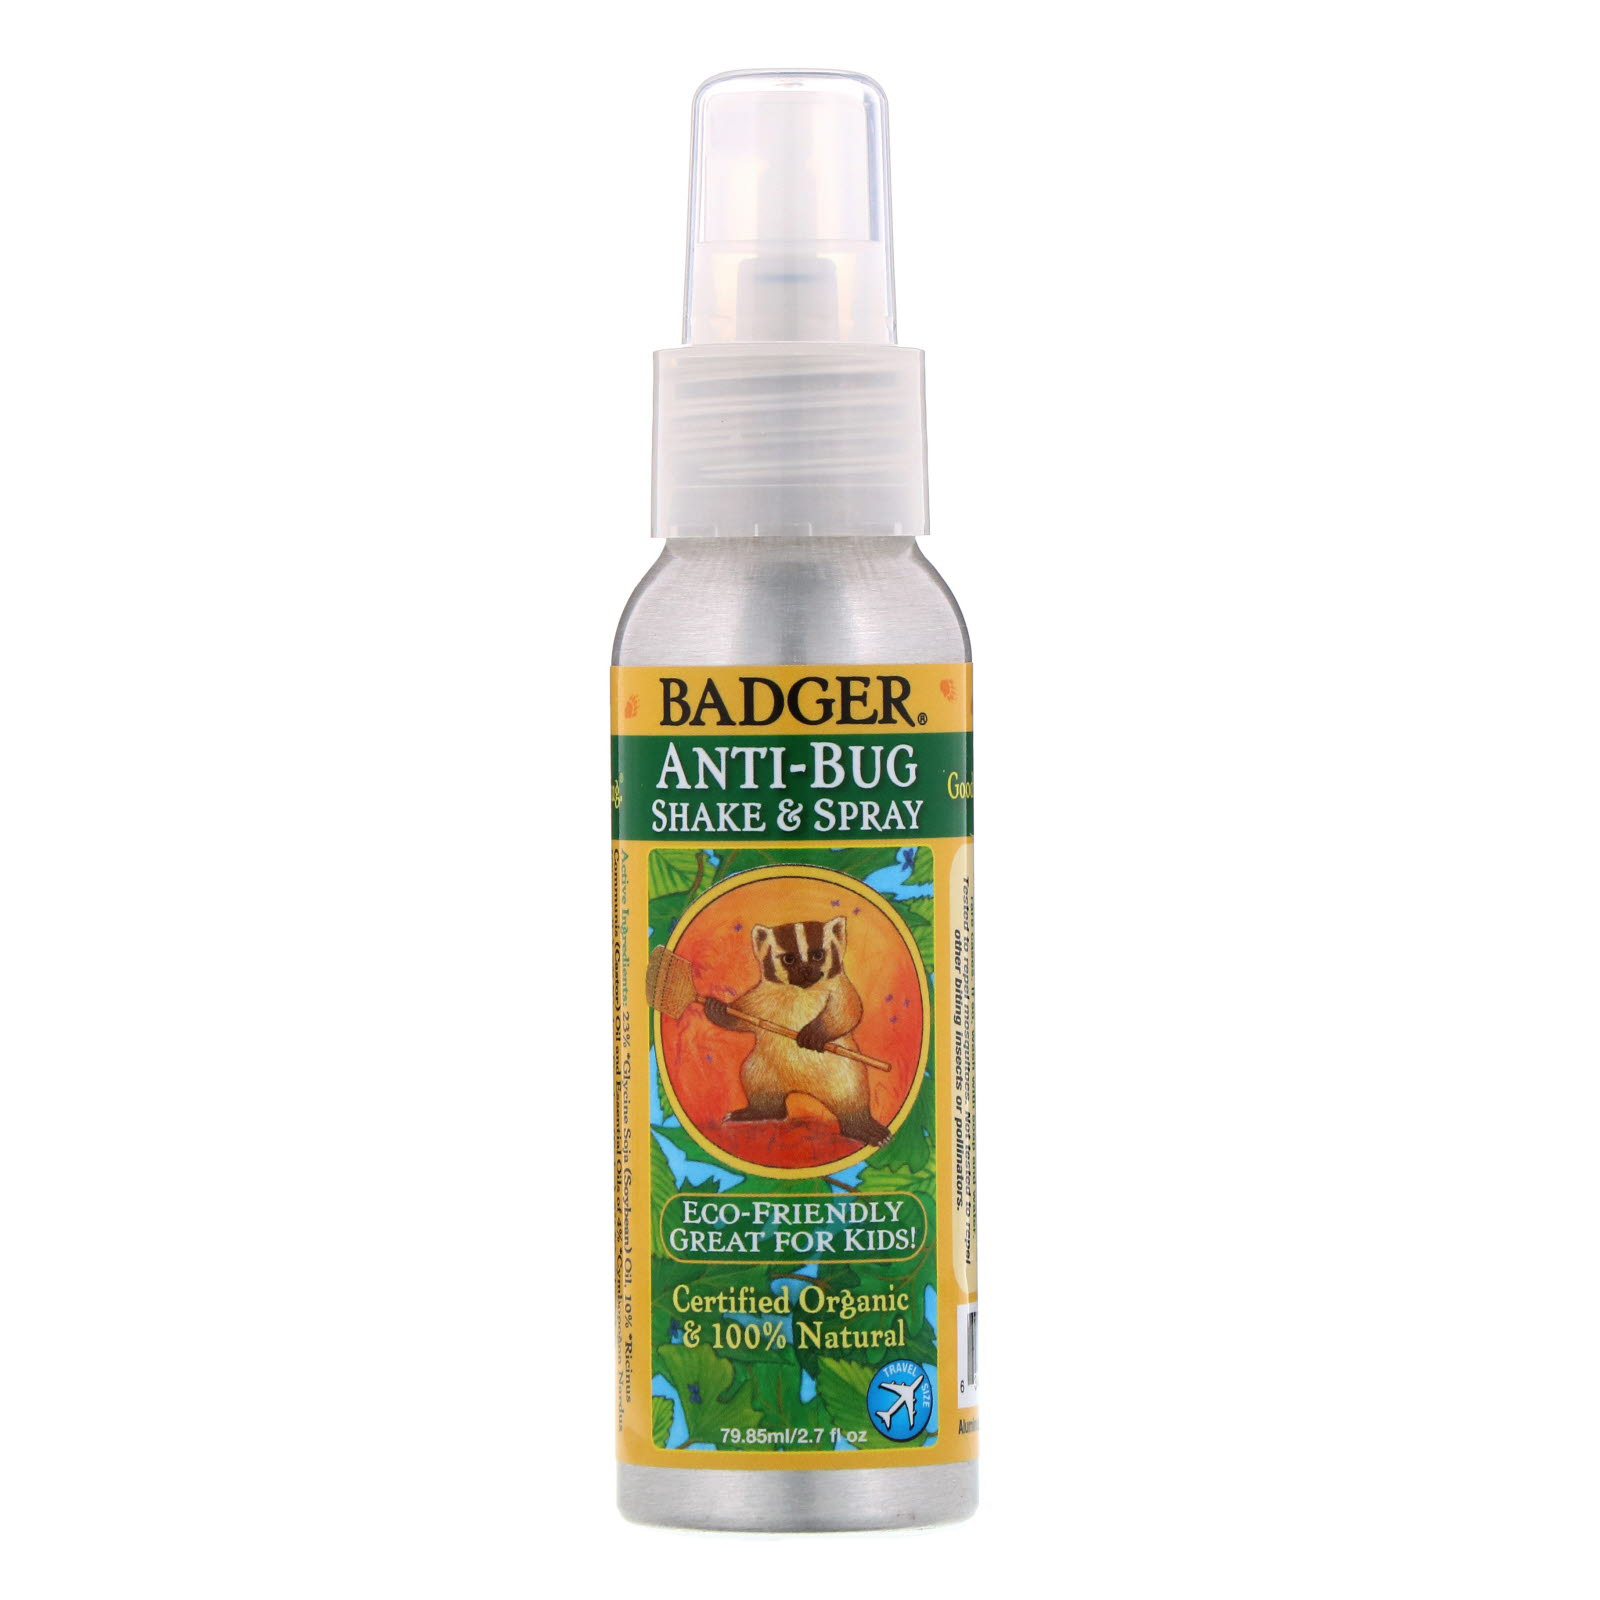 Anti-Bug Spray - This bug spray has been around for years for a reason. It is safe, effective and encased in an aluminum can that can be recycled.